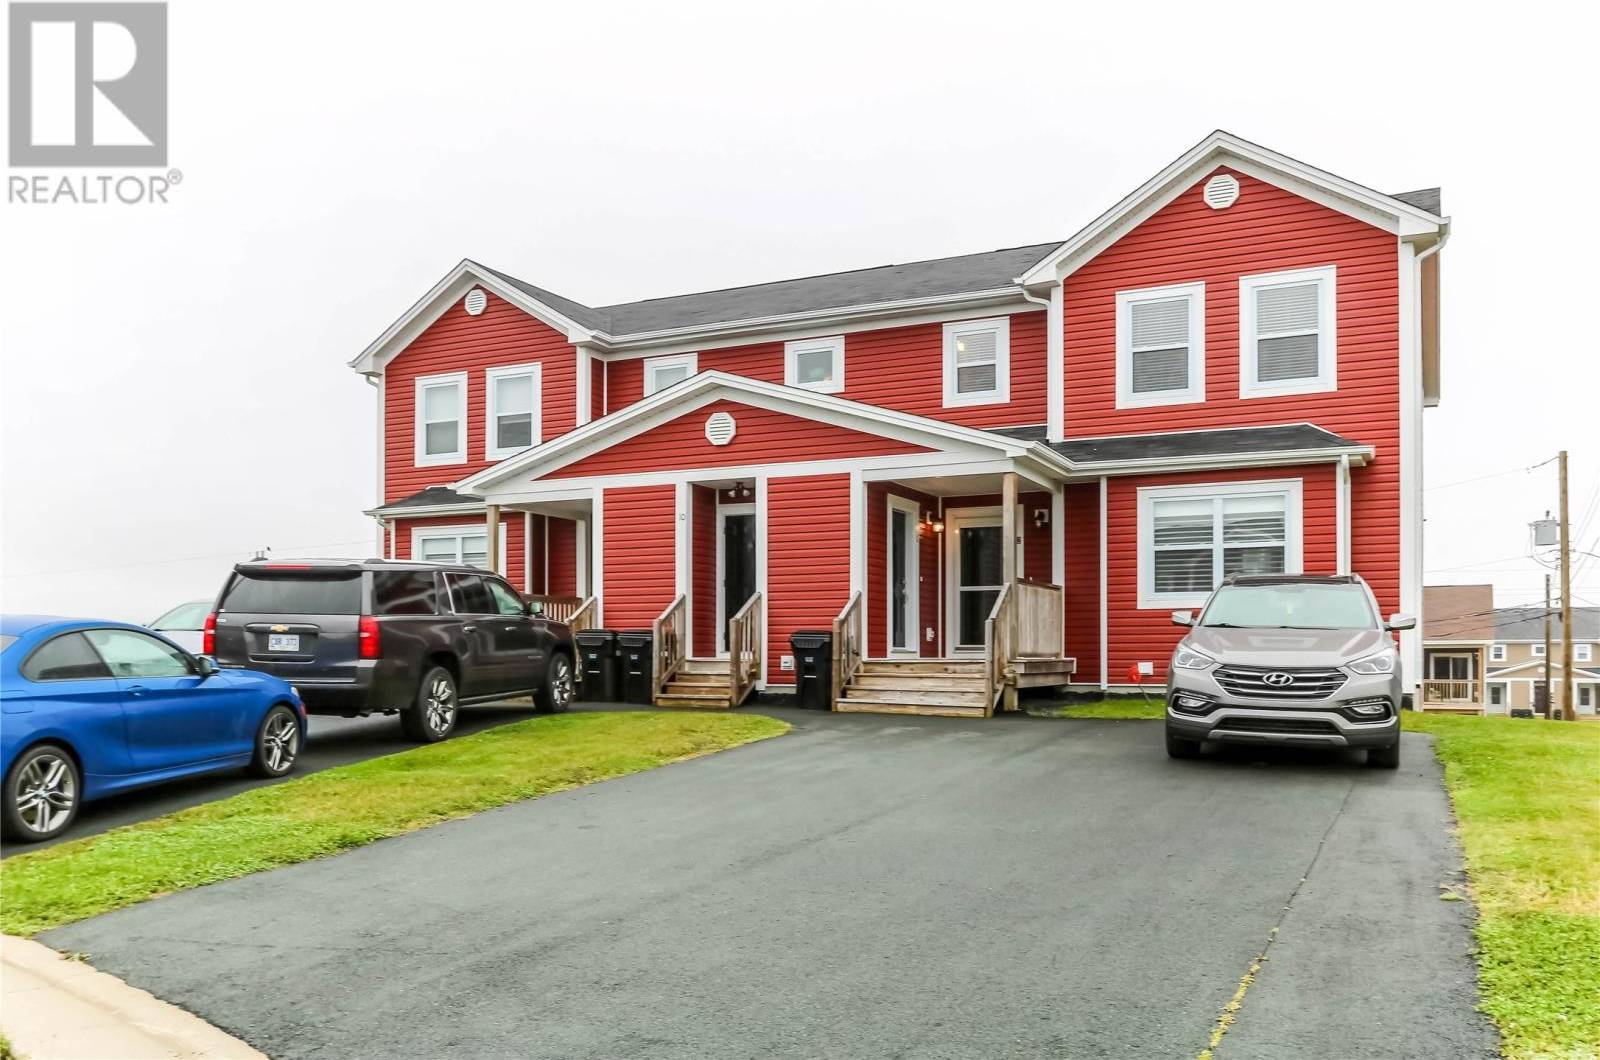 House for sale at 10 Guernsey Pl Unit 4 St. John's Newfoundland - MLS: 1207193